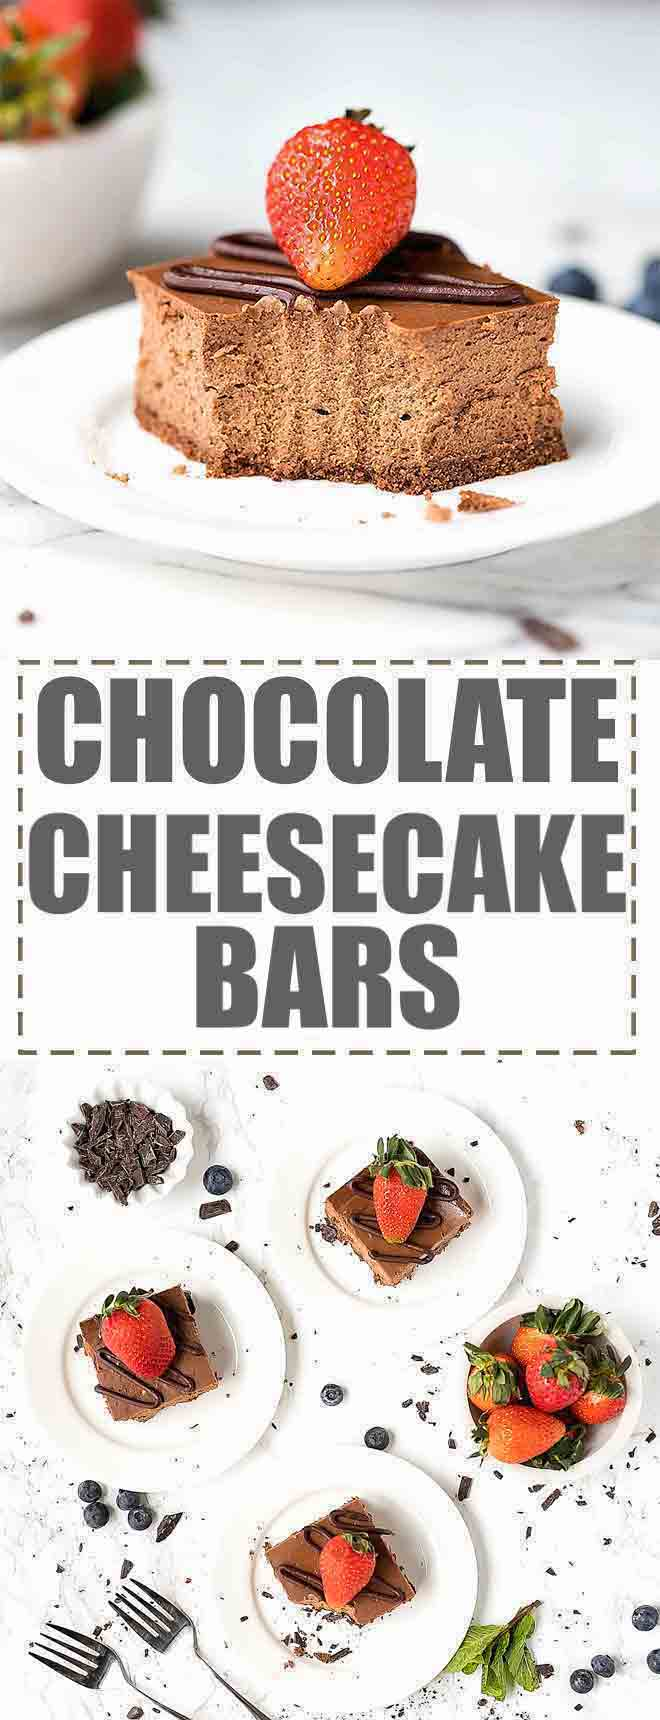 Chocolate Cheesecake Bars Recipe - rich, creamy and chocolatey chocolate cheesecake, baked in a square dish and cut into the most delicious chocolate cheesecake squares. #chocolatecheesecake #cheesecake #cheesecakebars #easycheesecake #cheesecakesquares #chocolatedesserts #chocolate #chocolaterecipes